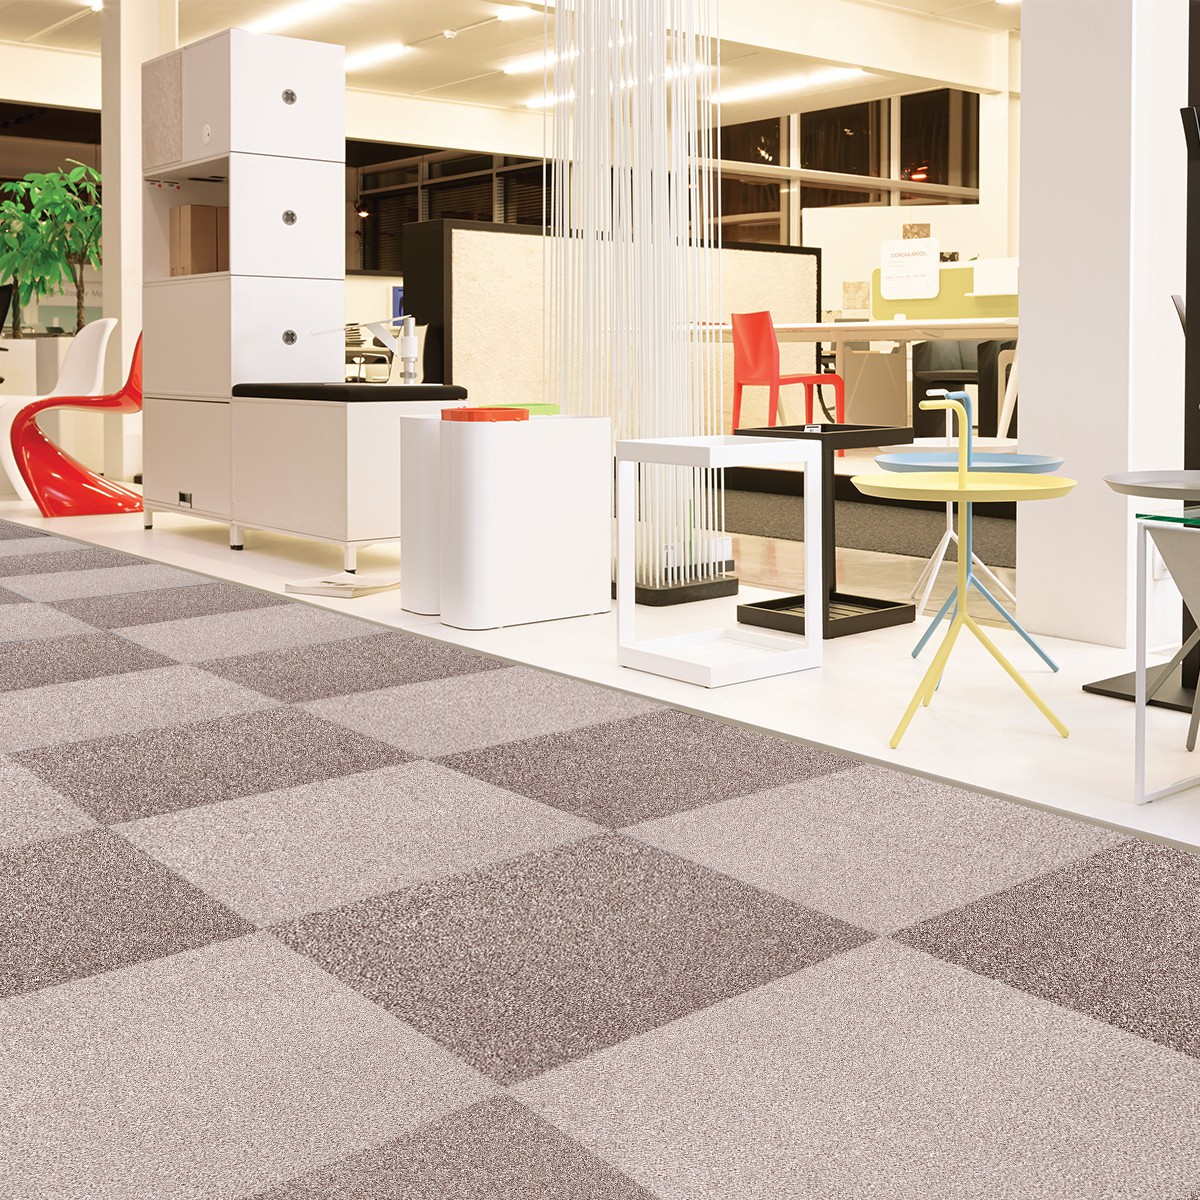 100 carpet tile rug carpet in basements the issues solution